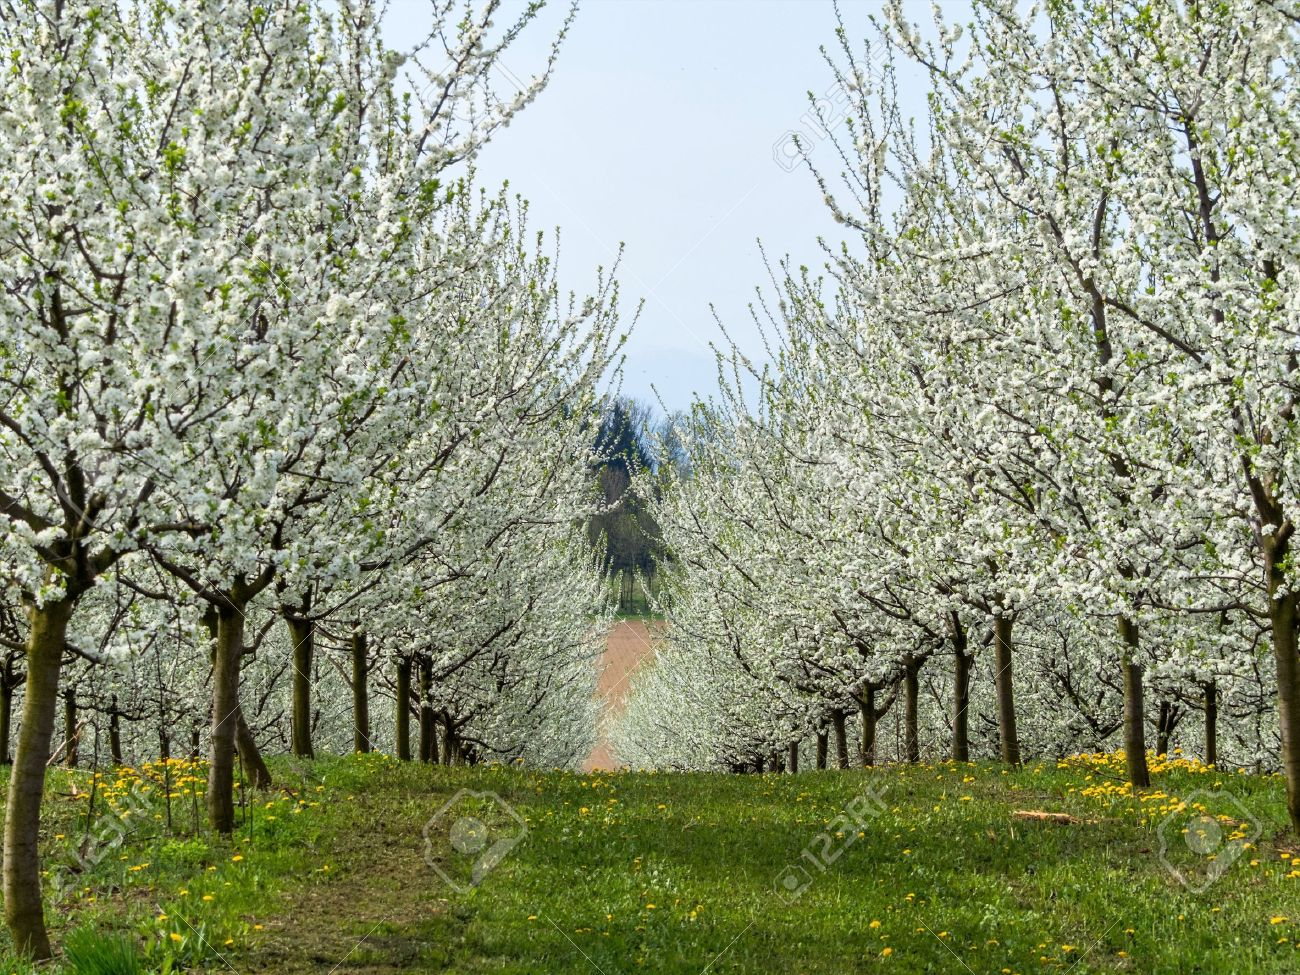 many flowering fruit trees in spring. tree bloomed in the spring is a beautiful time of year. Stock Photo - 53973574